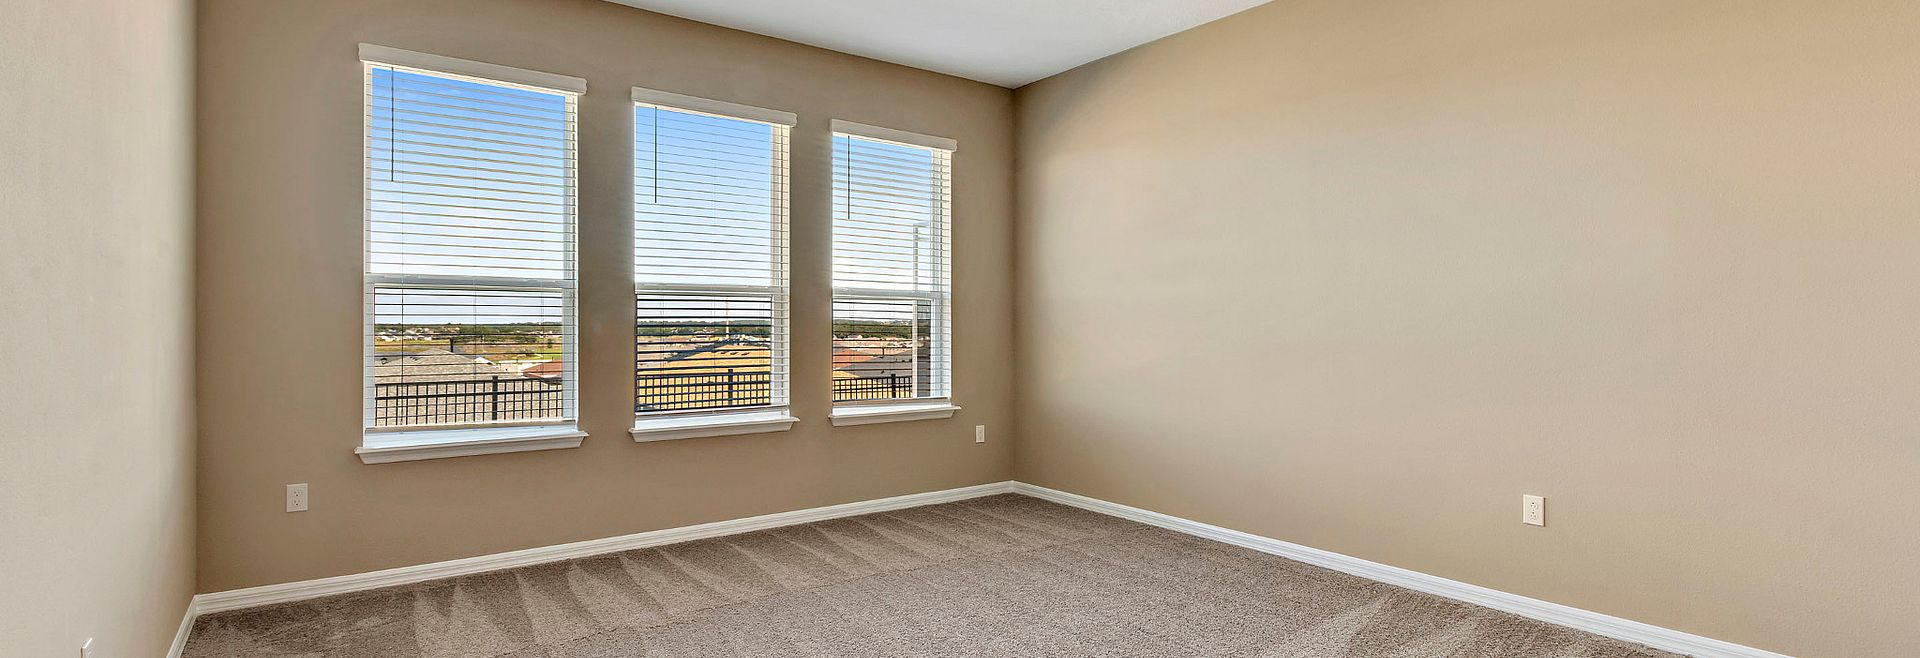 Trilogy Orlando Quick Move In Home Declare Plan Master Bed